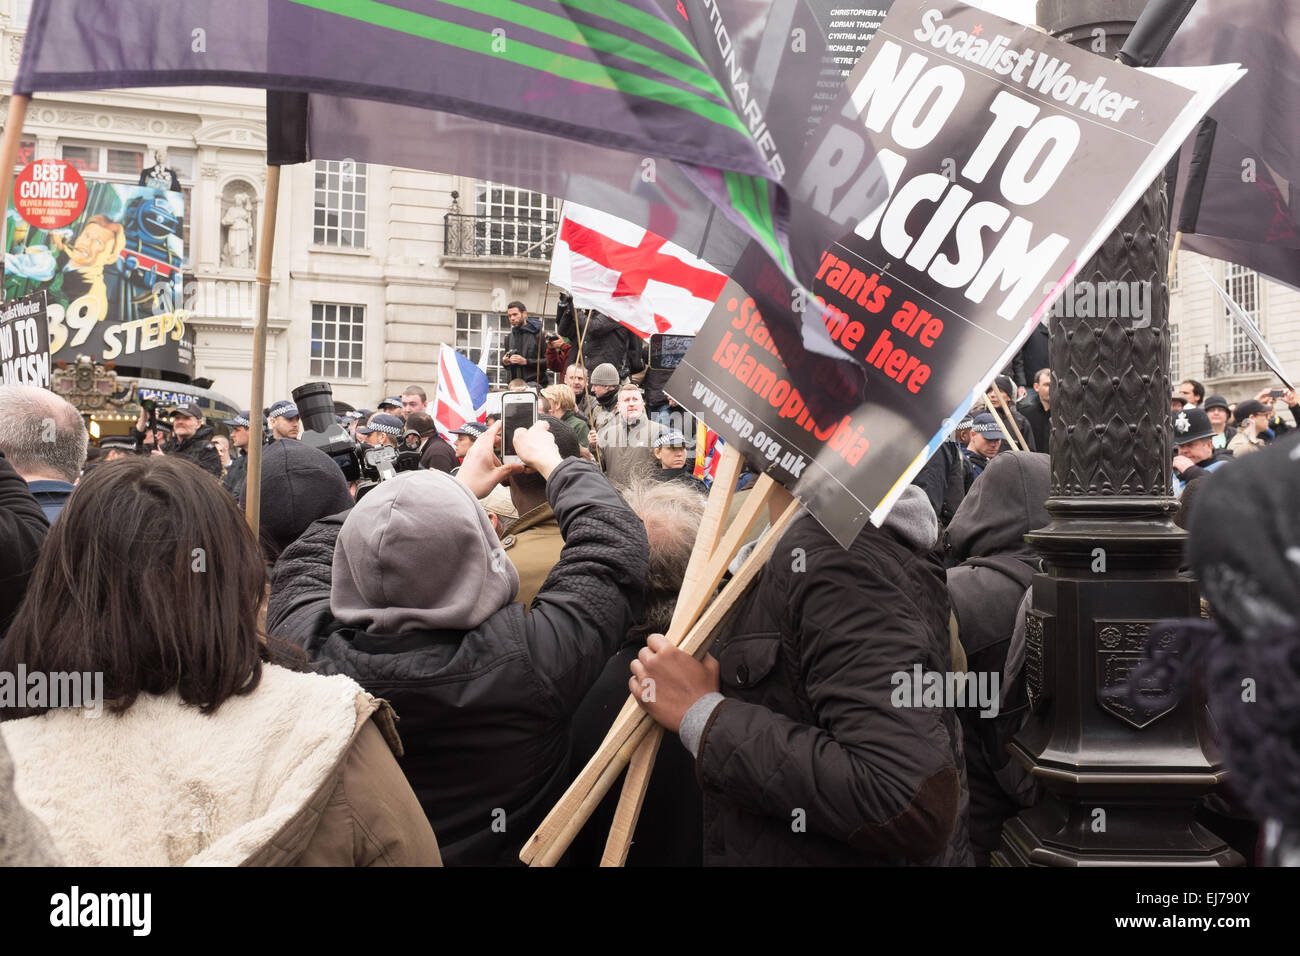 An Anti-racism Demo in London, 21st March 2015. Paul Golding of Britain First pictured on the steps of Eros at Piccadilly - Stock Image